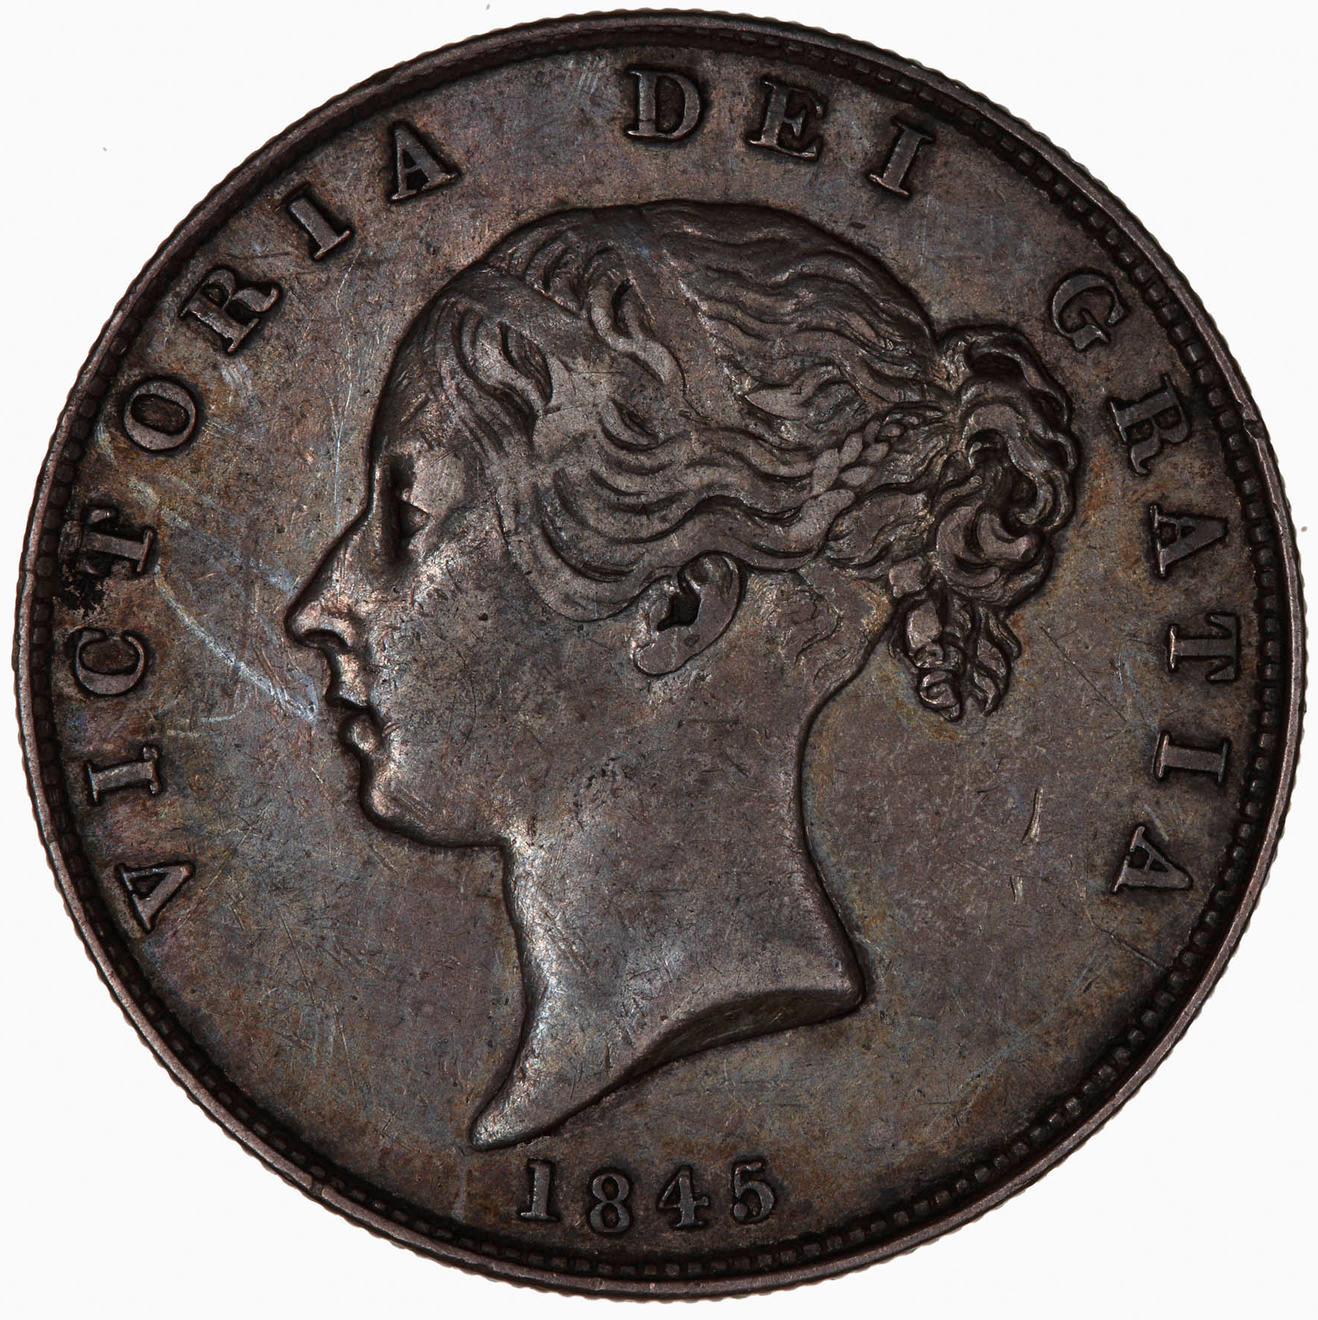 Halfcrown 1845: Photo Coin - Halfcrown, Queen Victoria, Great Britain, 1845